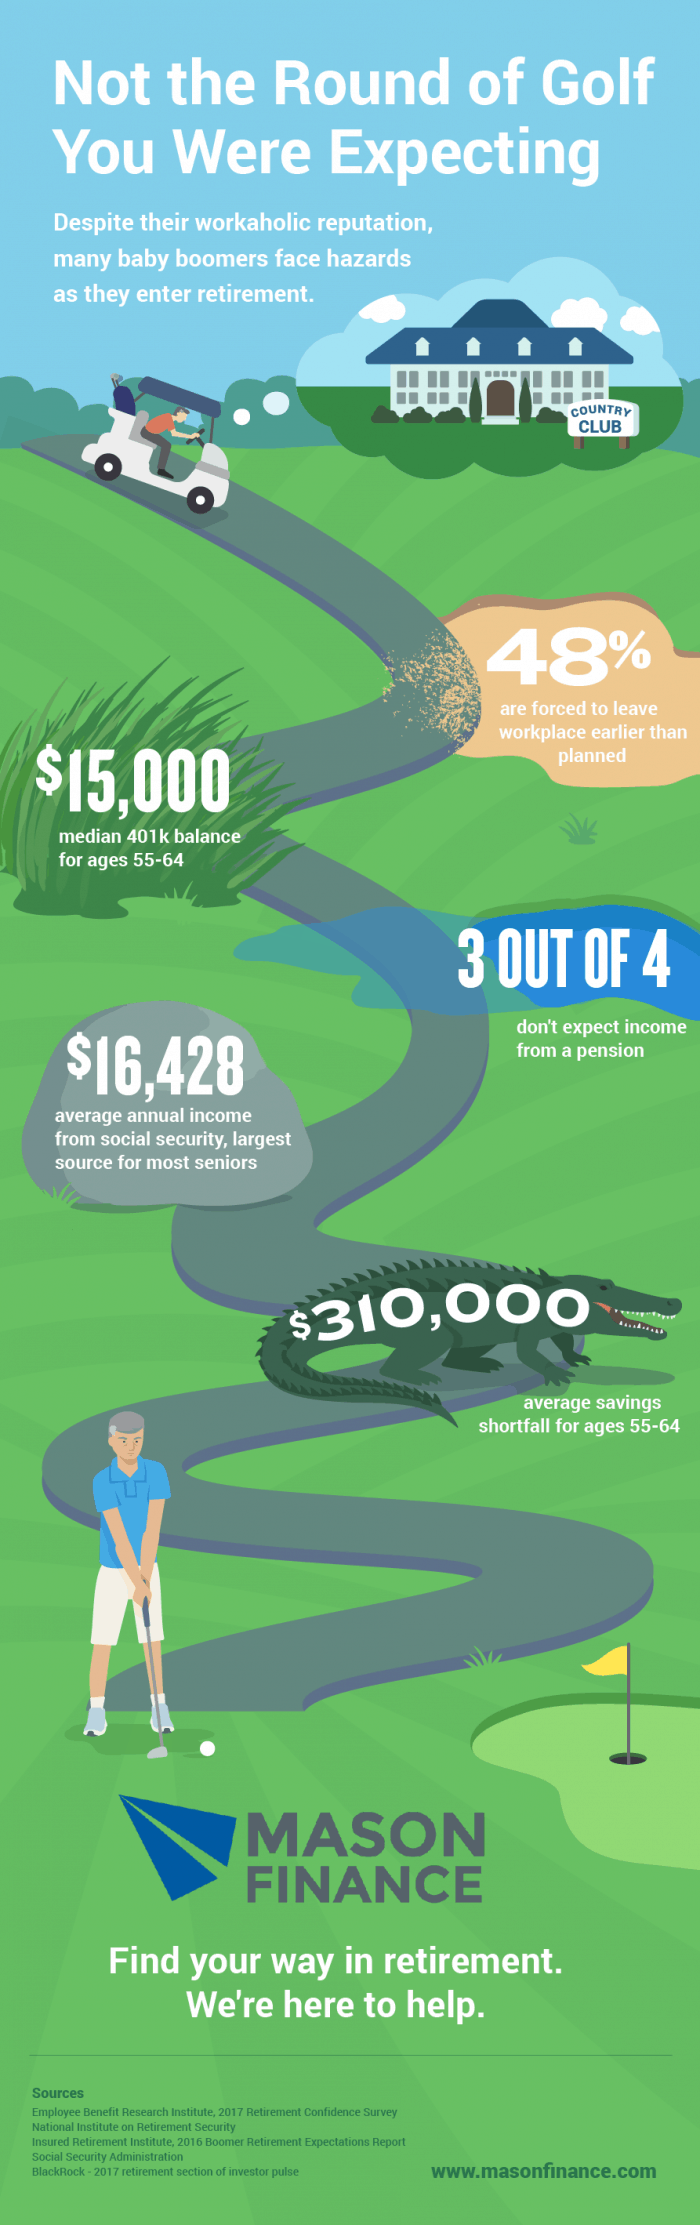 infographic describes the potential pitfalls of retirement